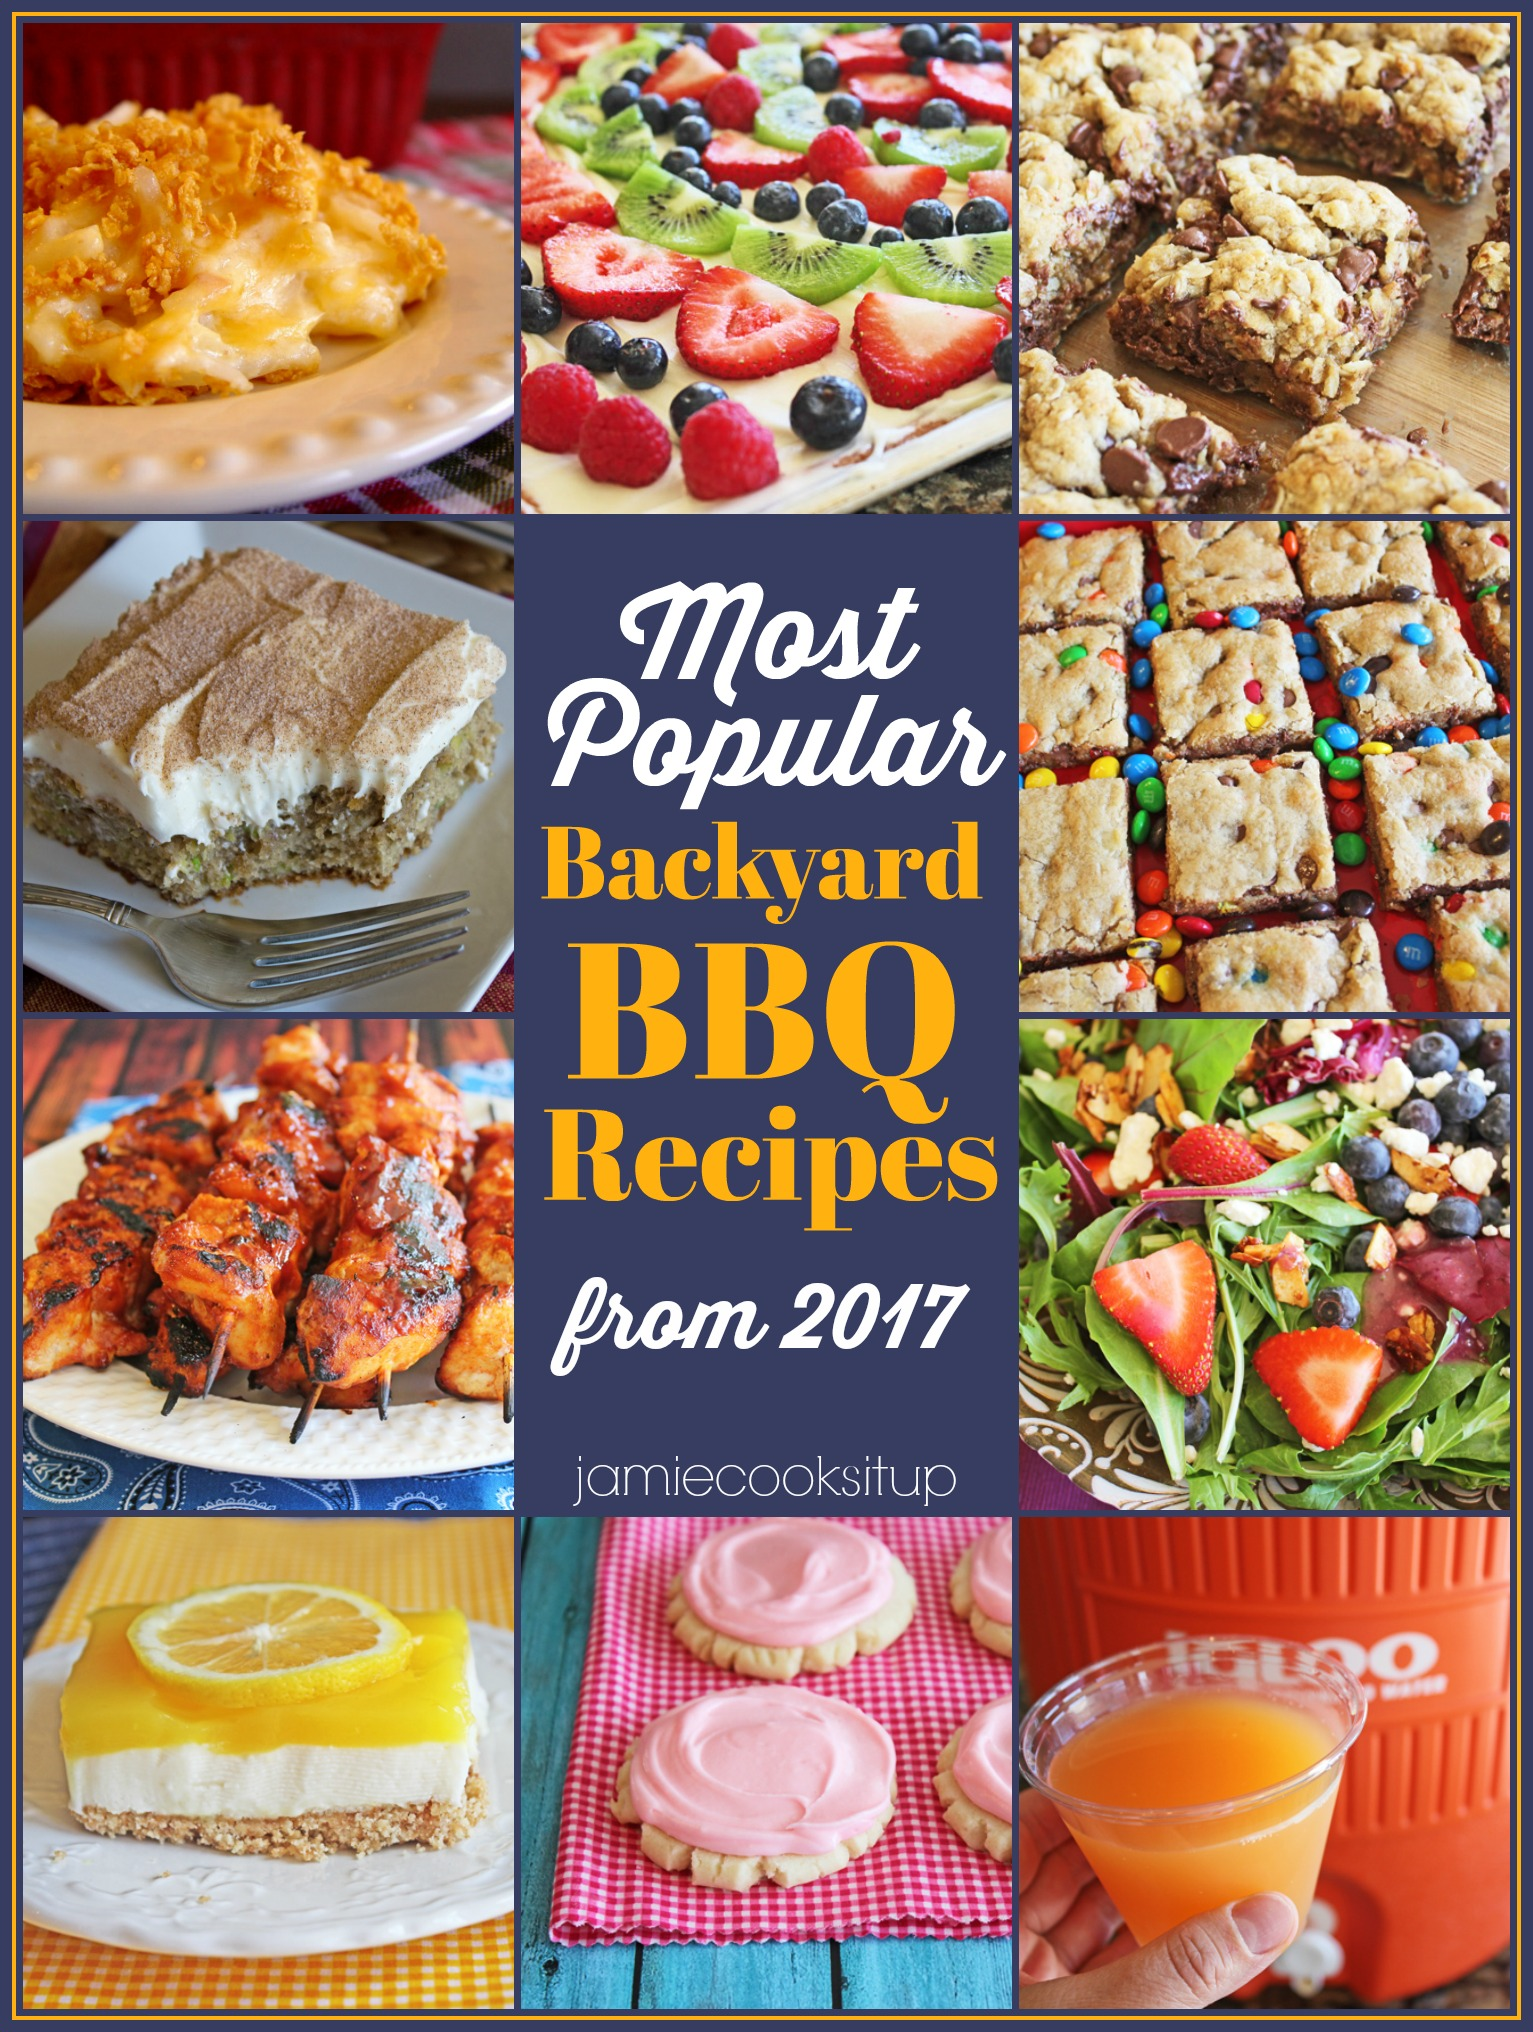 Most Popular Summer BBQ Recipes from 2017